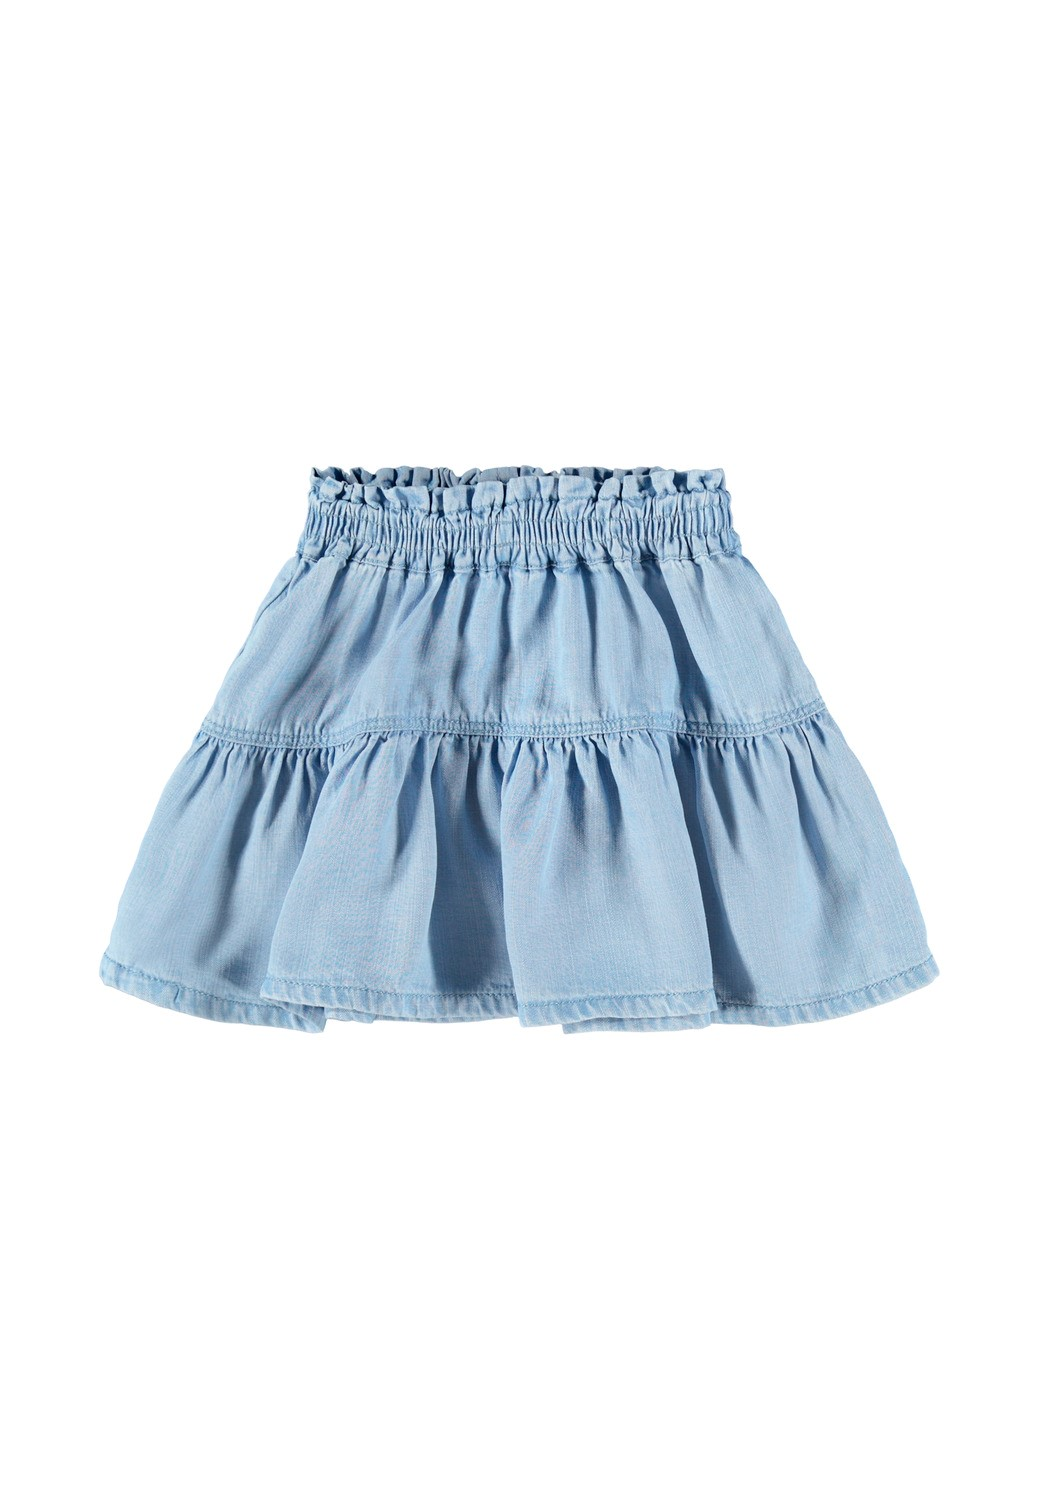 Becky Denim skirt, 116-164